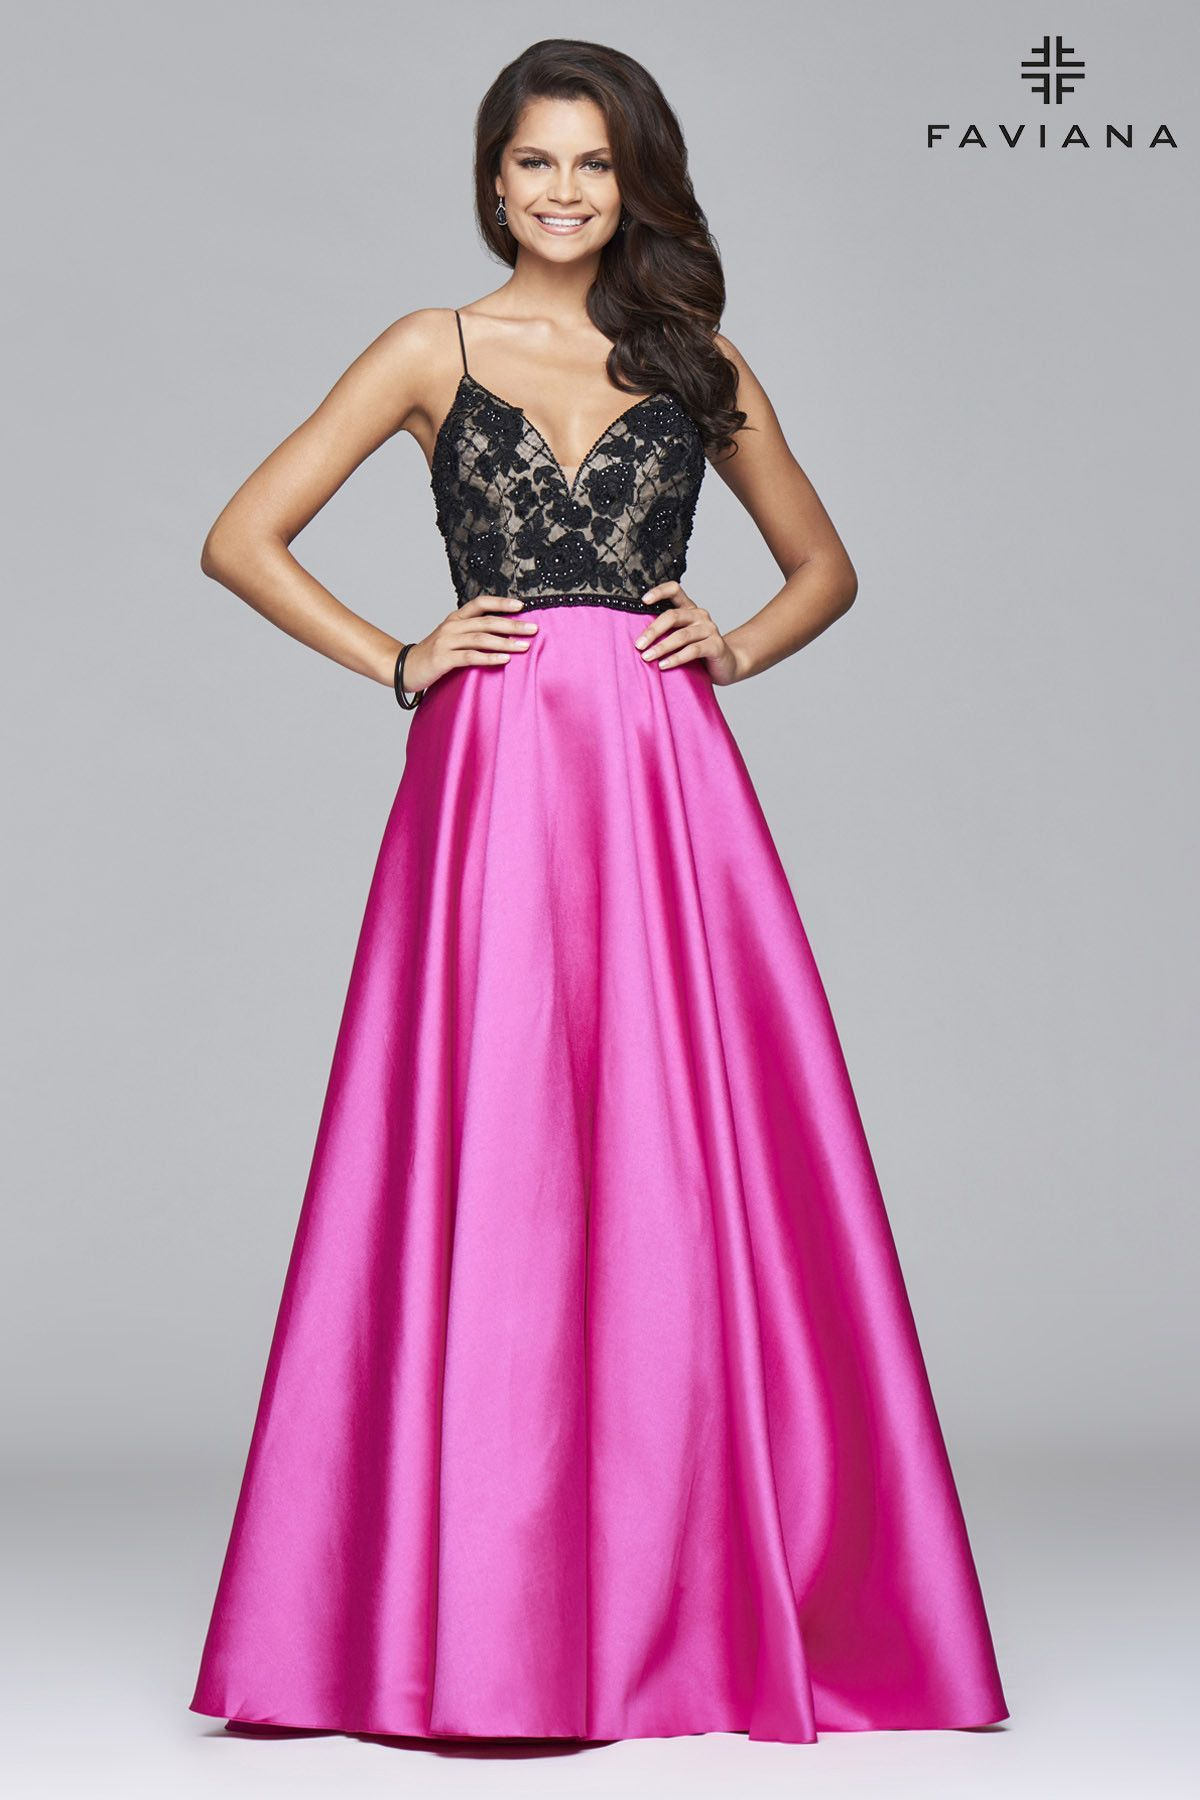 Faviana prom dress style s7947   dresses♡   Pinterest   Prom and ...